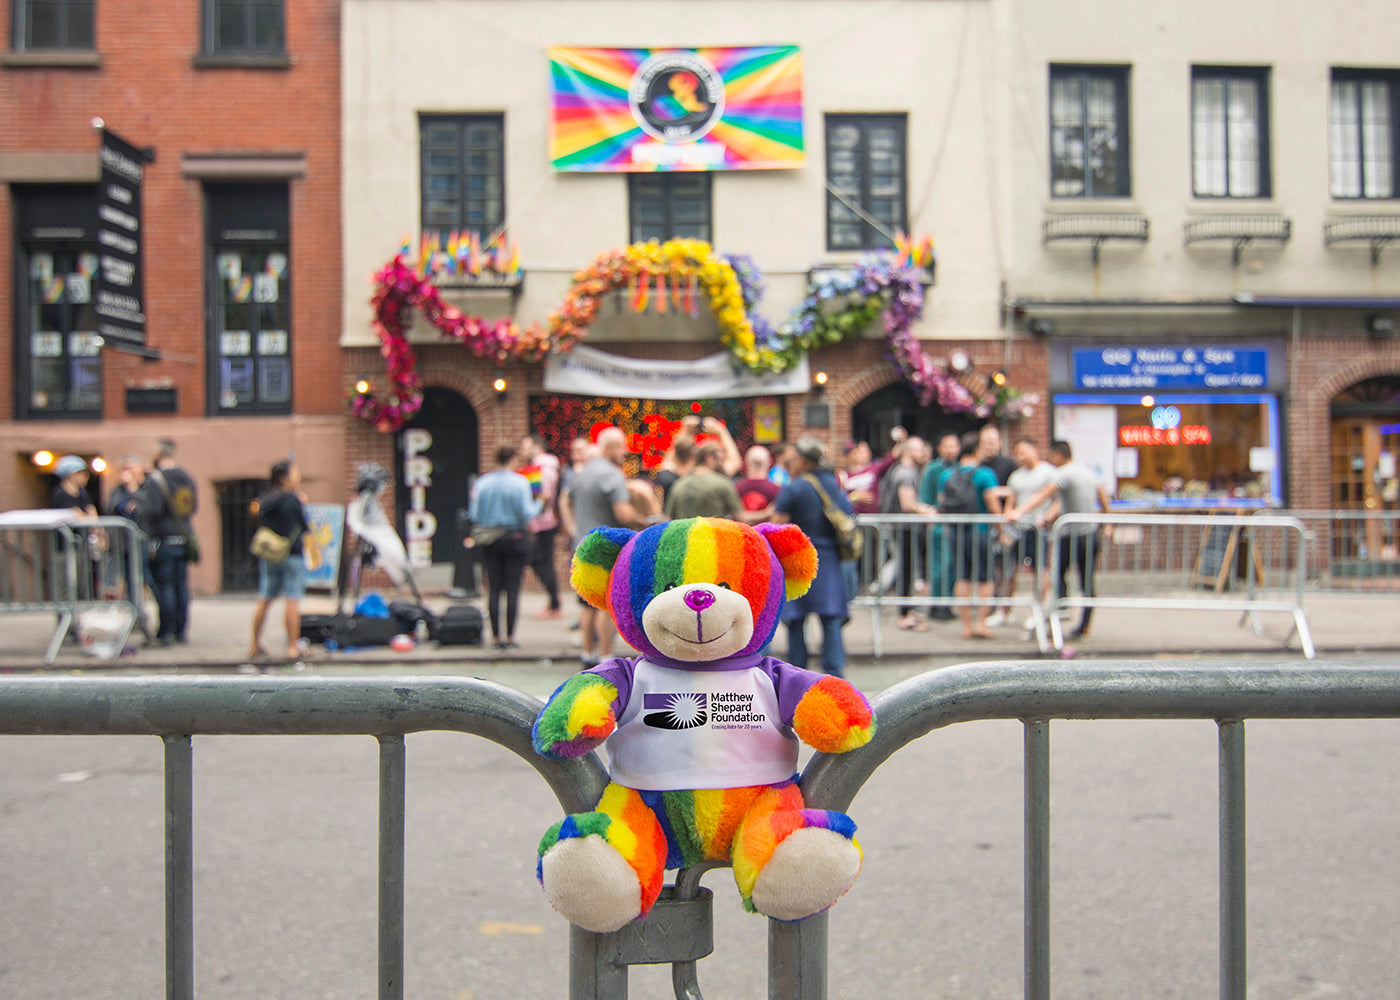 Bear Buggy®'s Totally Pride Teddy photographed for Pride in front of Stonewall, the birthplace of the modern LGBTQ civil rights movement.